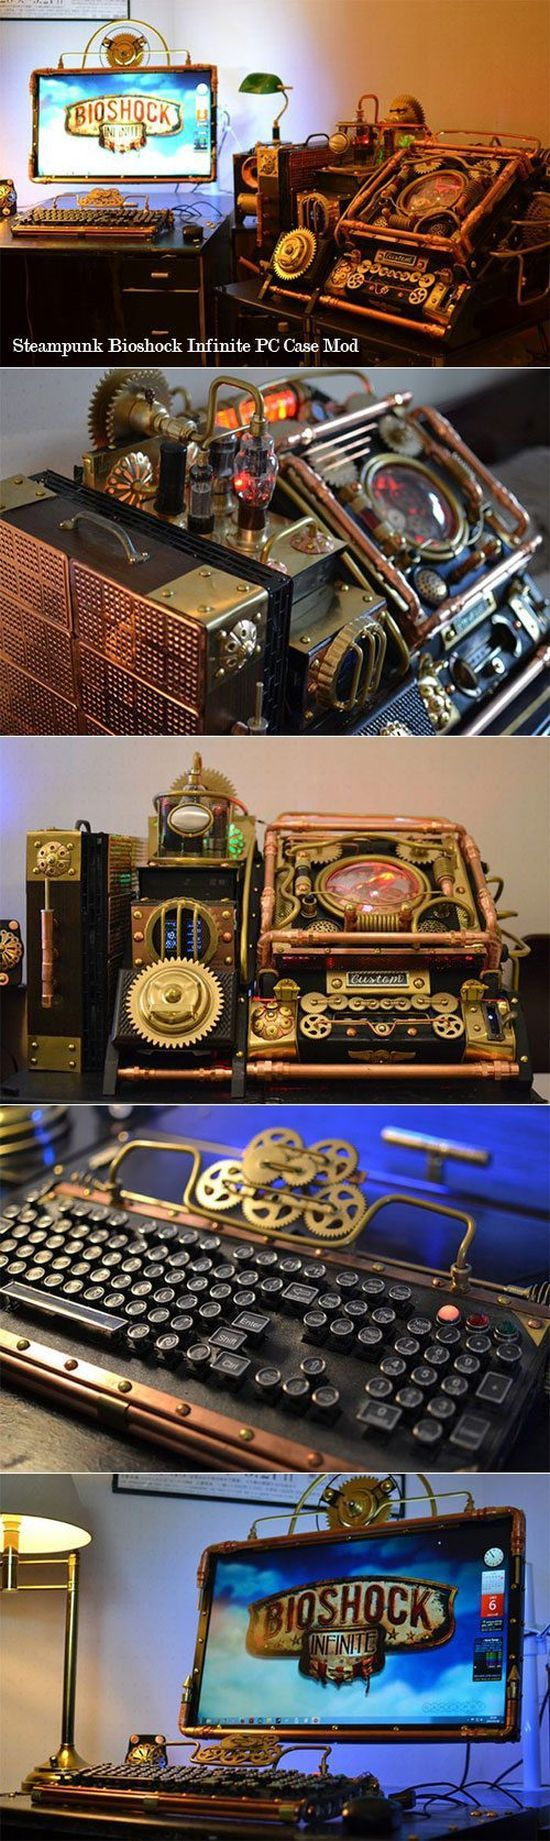 steampunk bioshock mod pc case